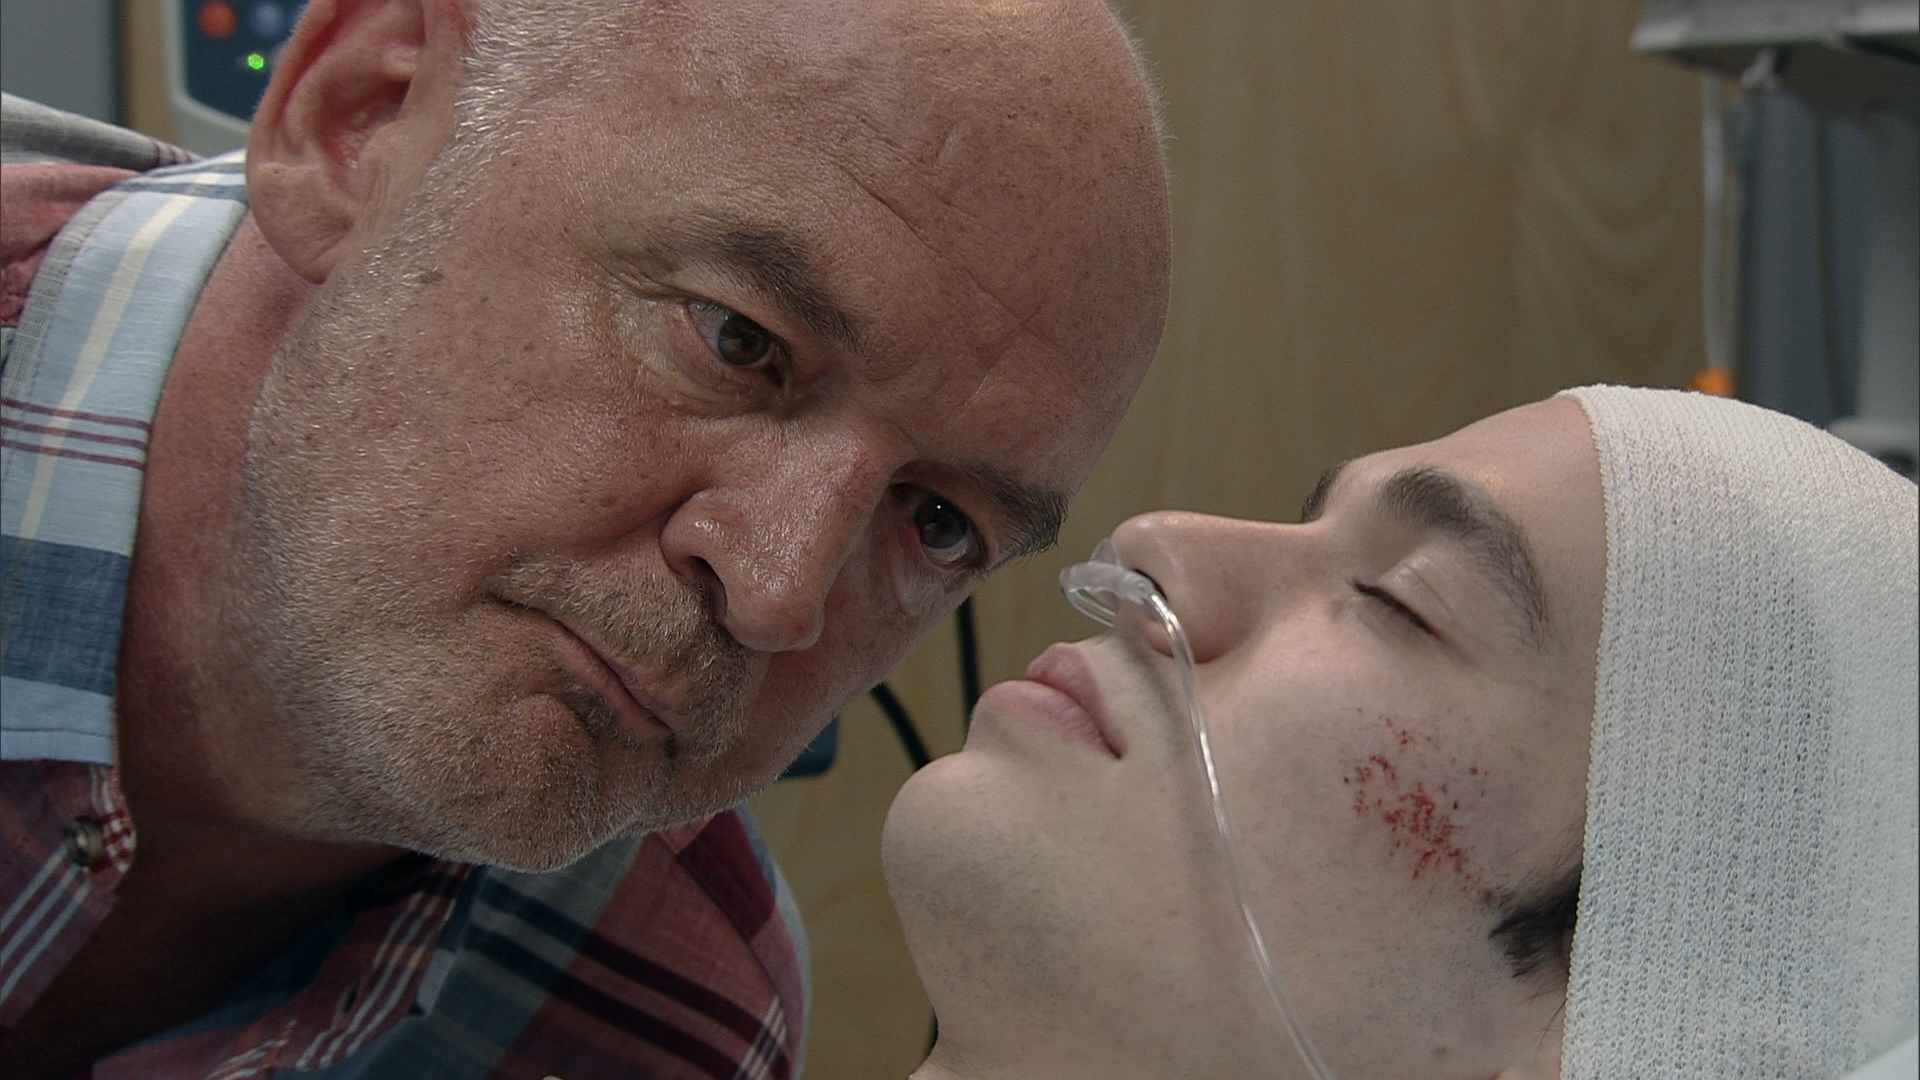 CORRIE 9287 MON 30TH OCT 1930 PREVIEW CLIP